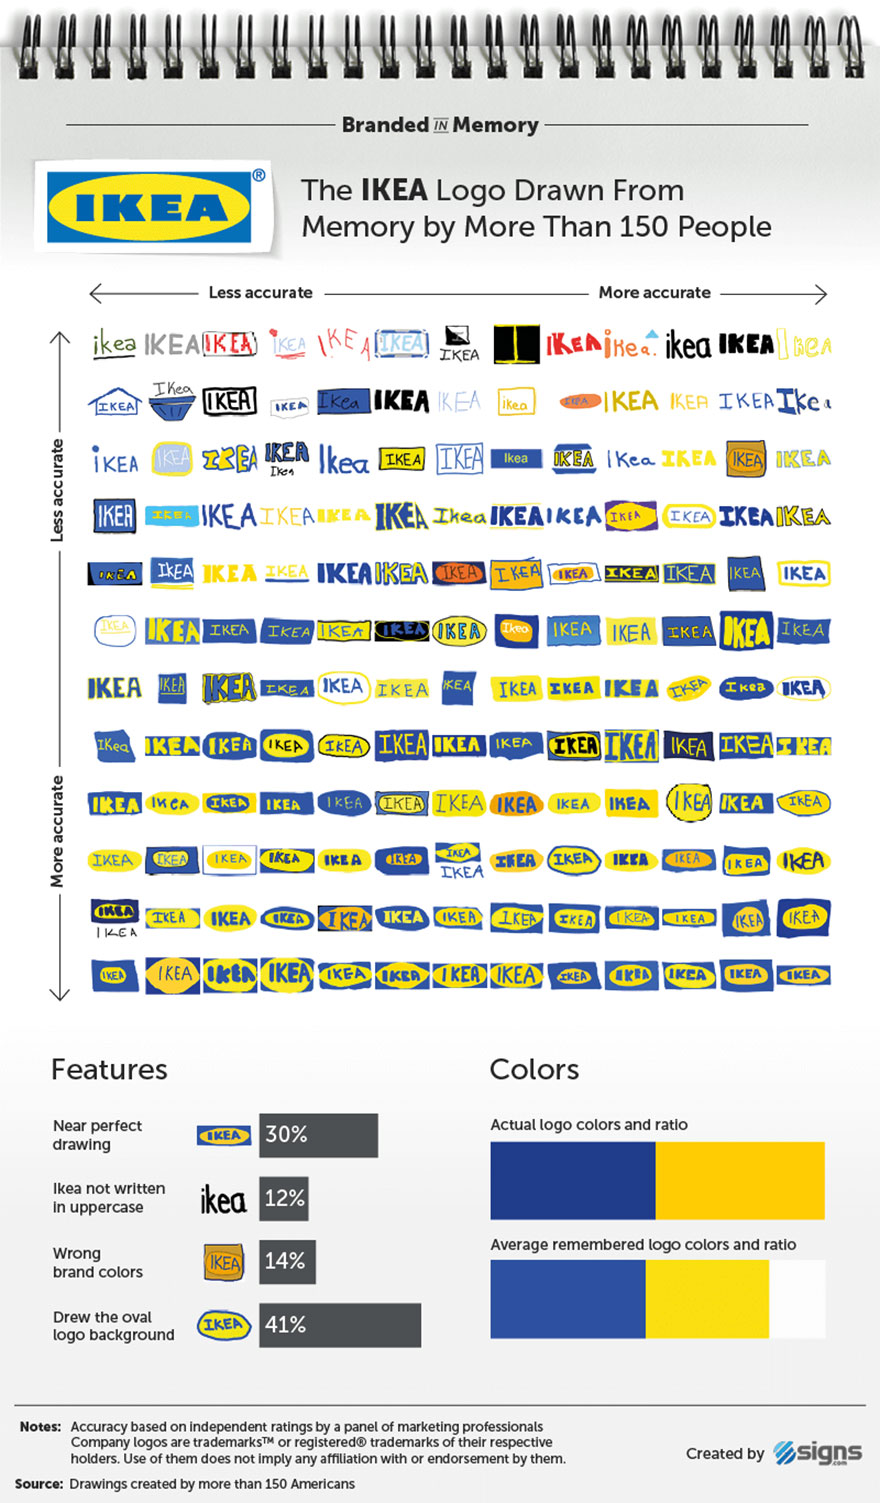 famous-brand-logos-drawn-from-memory-13-59d24652b52a4__880.jpg